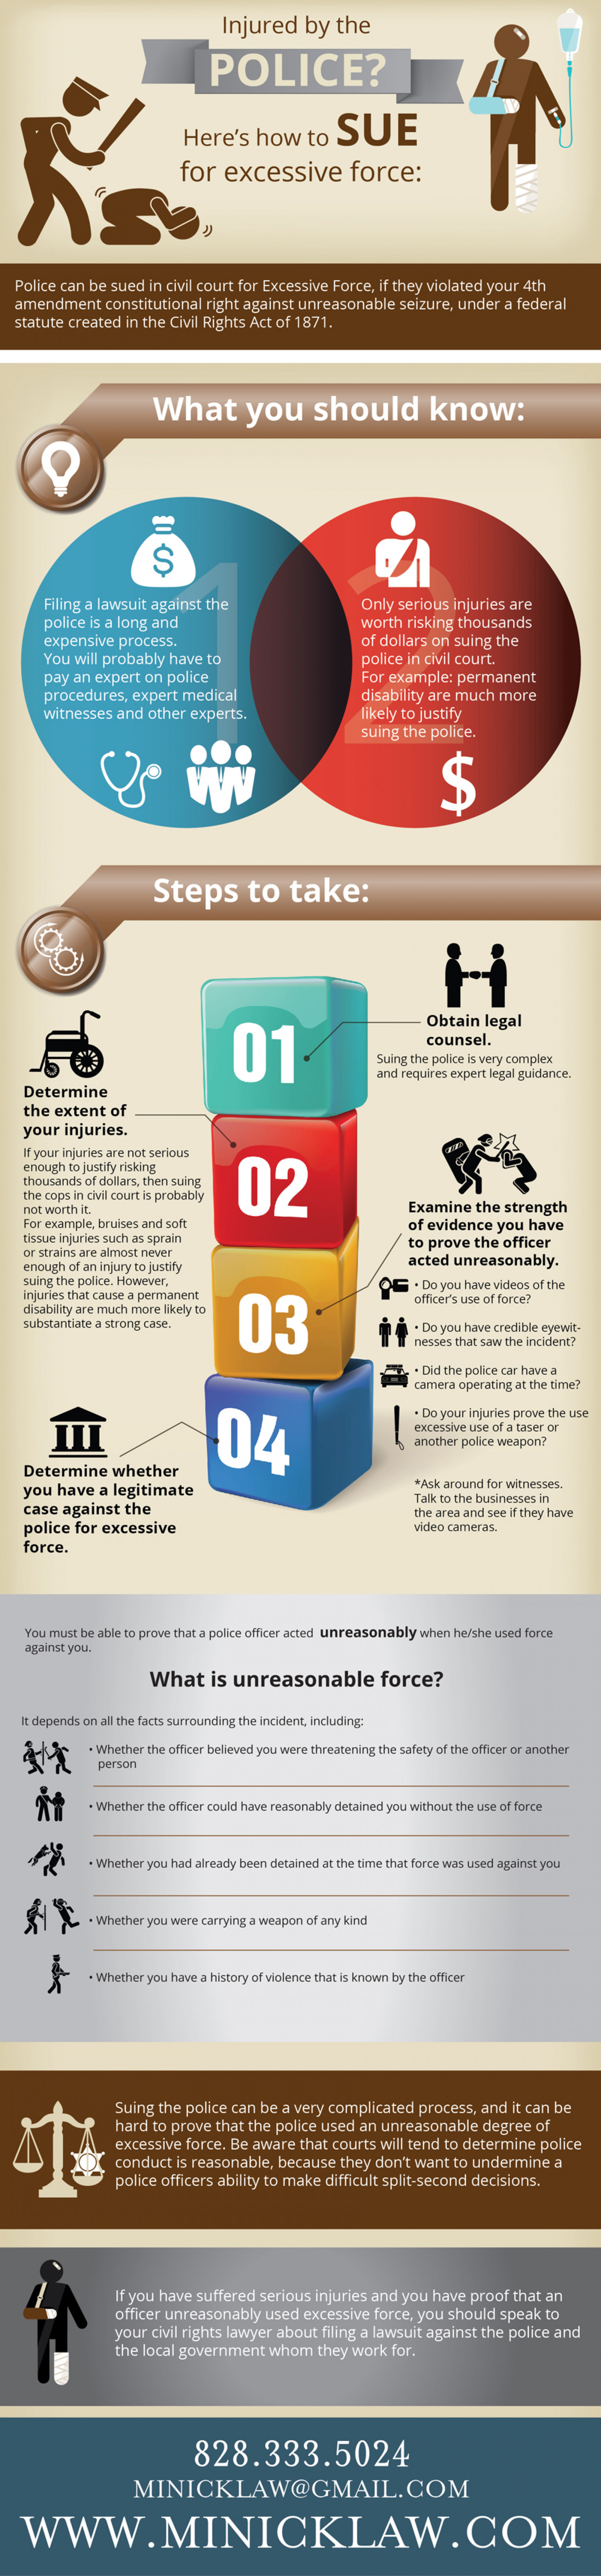 Injured by the Police?  Here's how to sue for excessive force Infographic